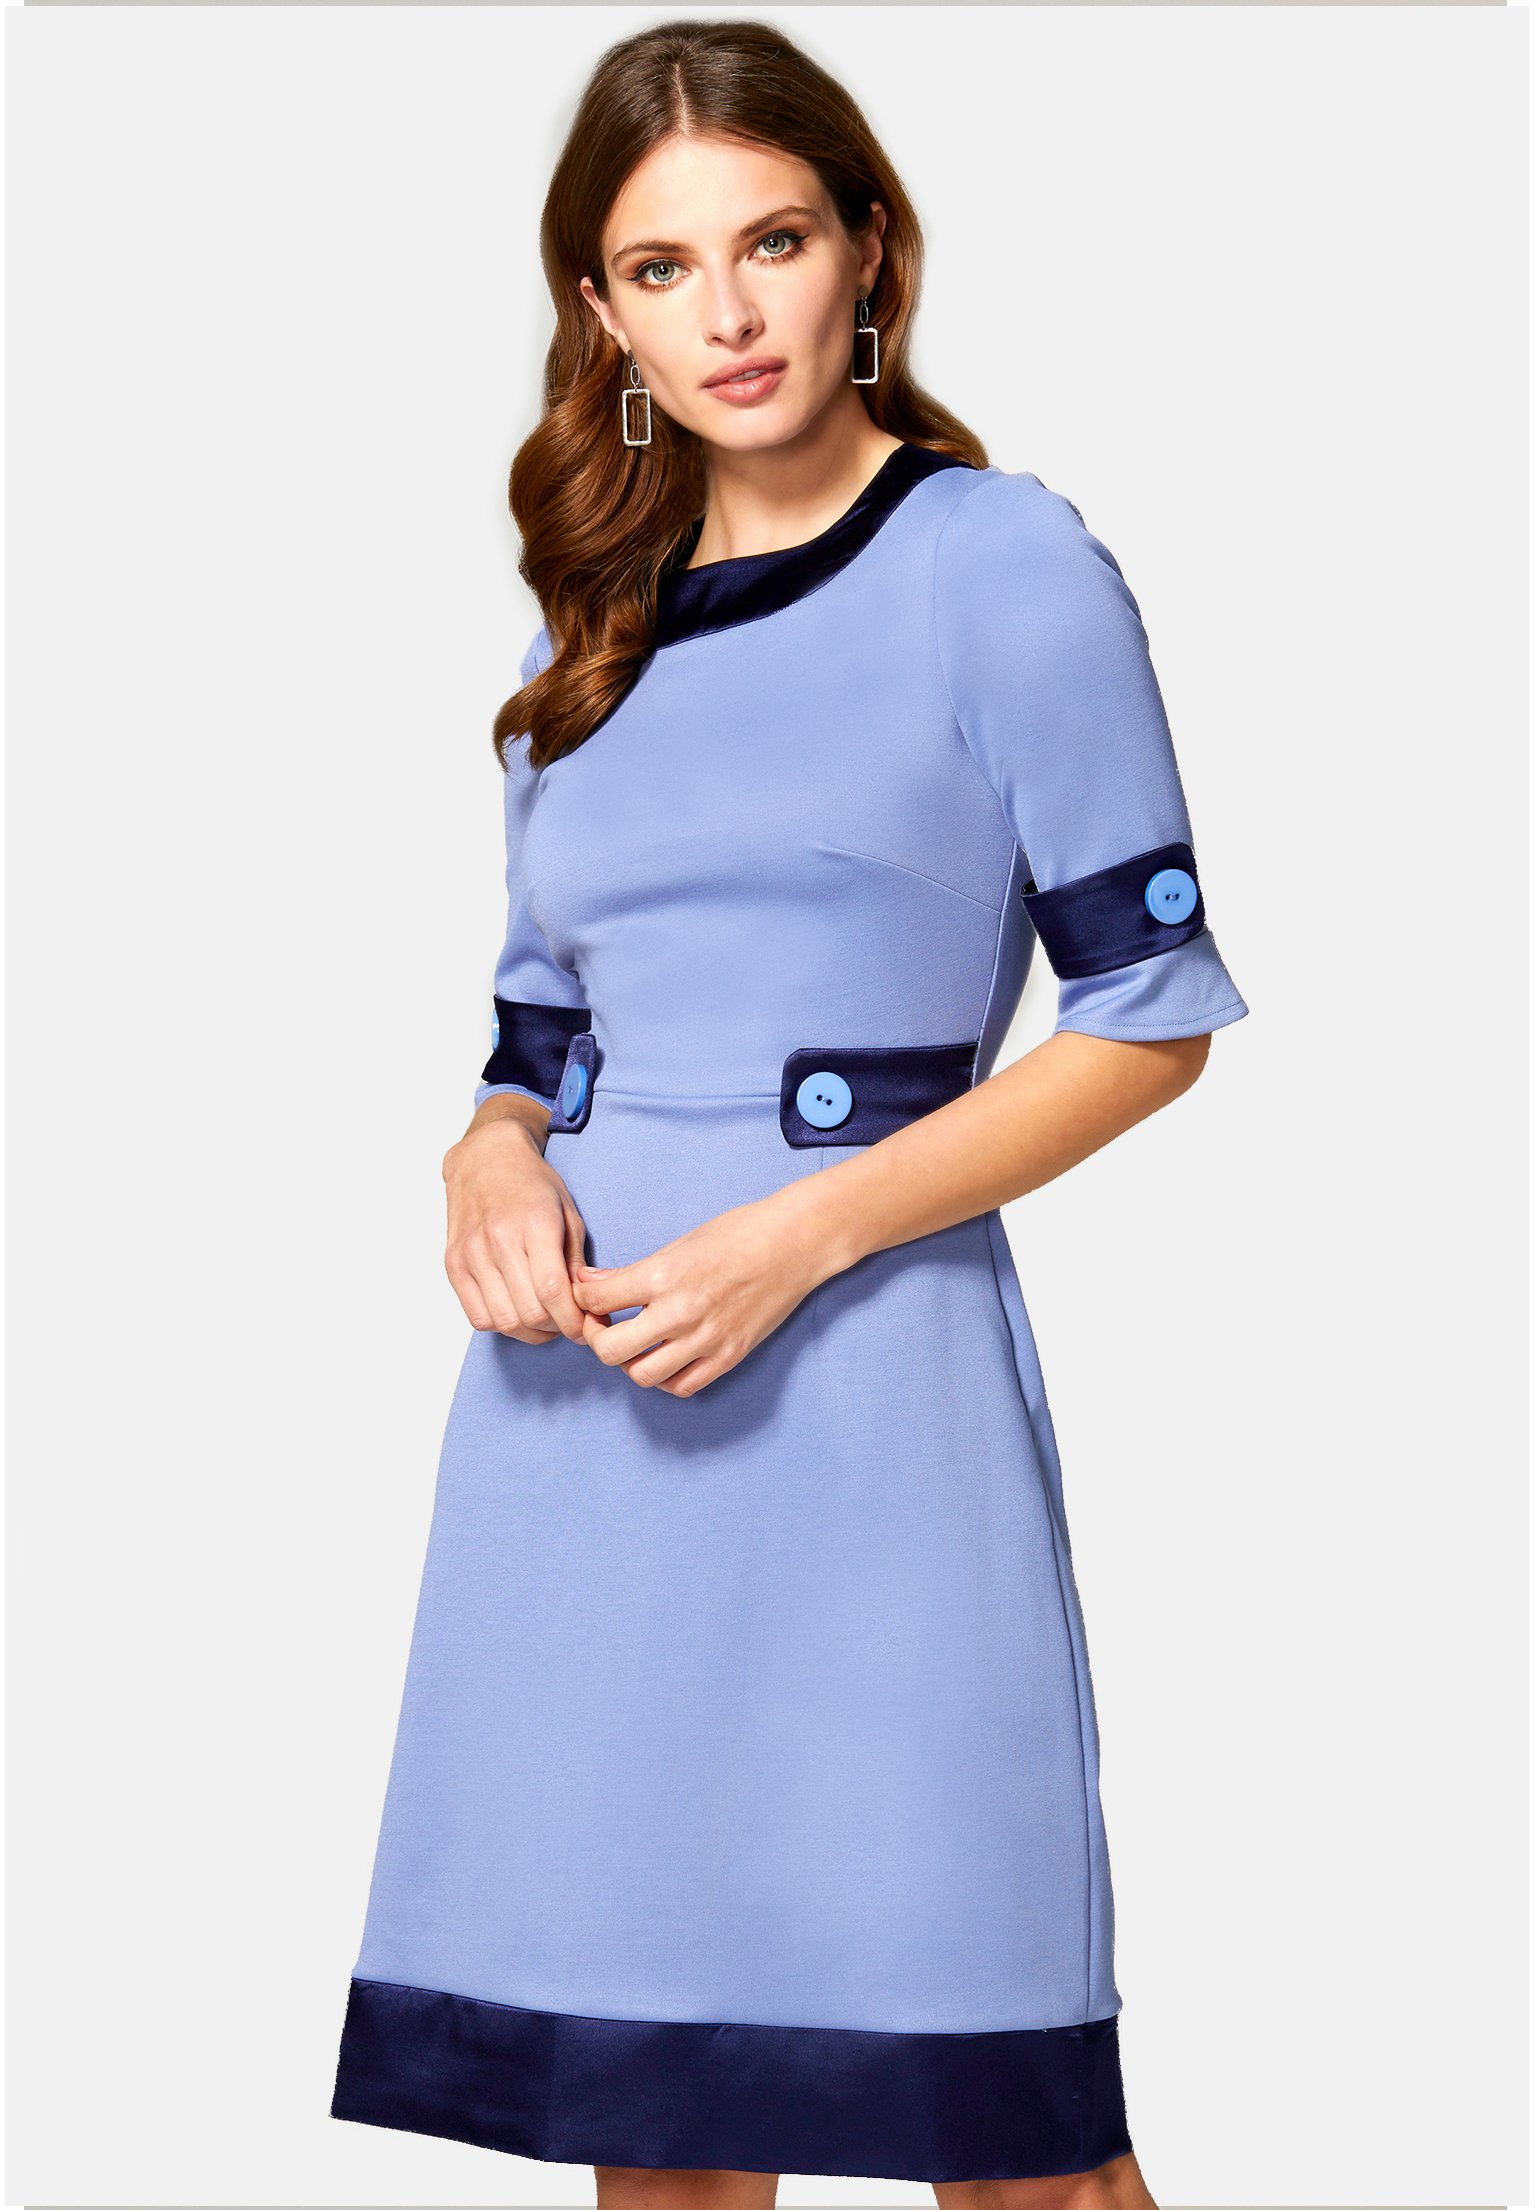 Online Cheapest Women's Clothing HotSquash 60S DRESS WITH CONTRAST HEM Day dress woodblue and navy silky 4IPvb1J5B